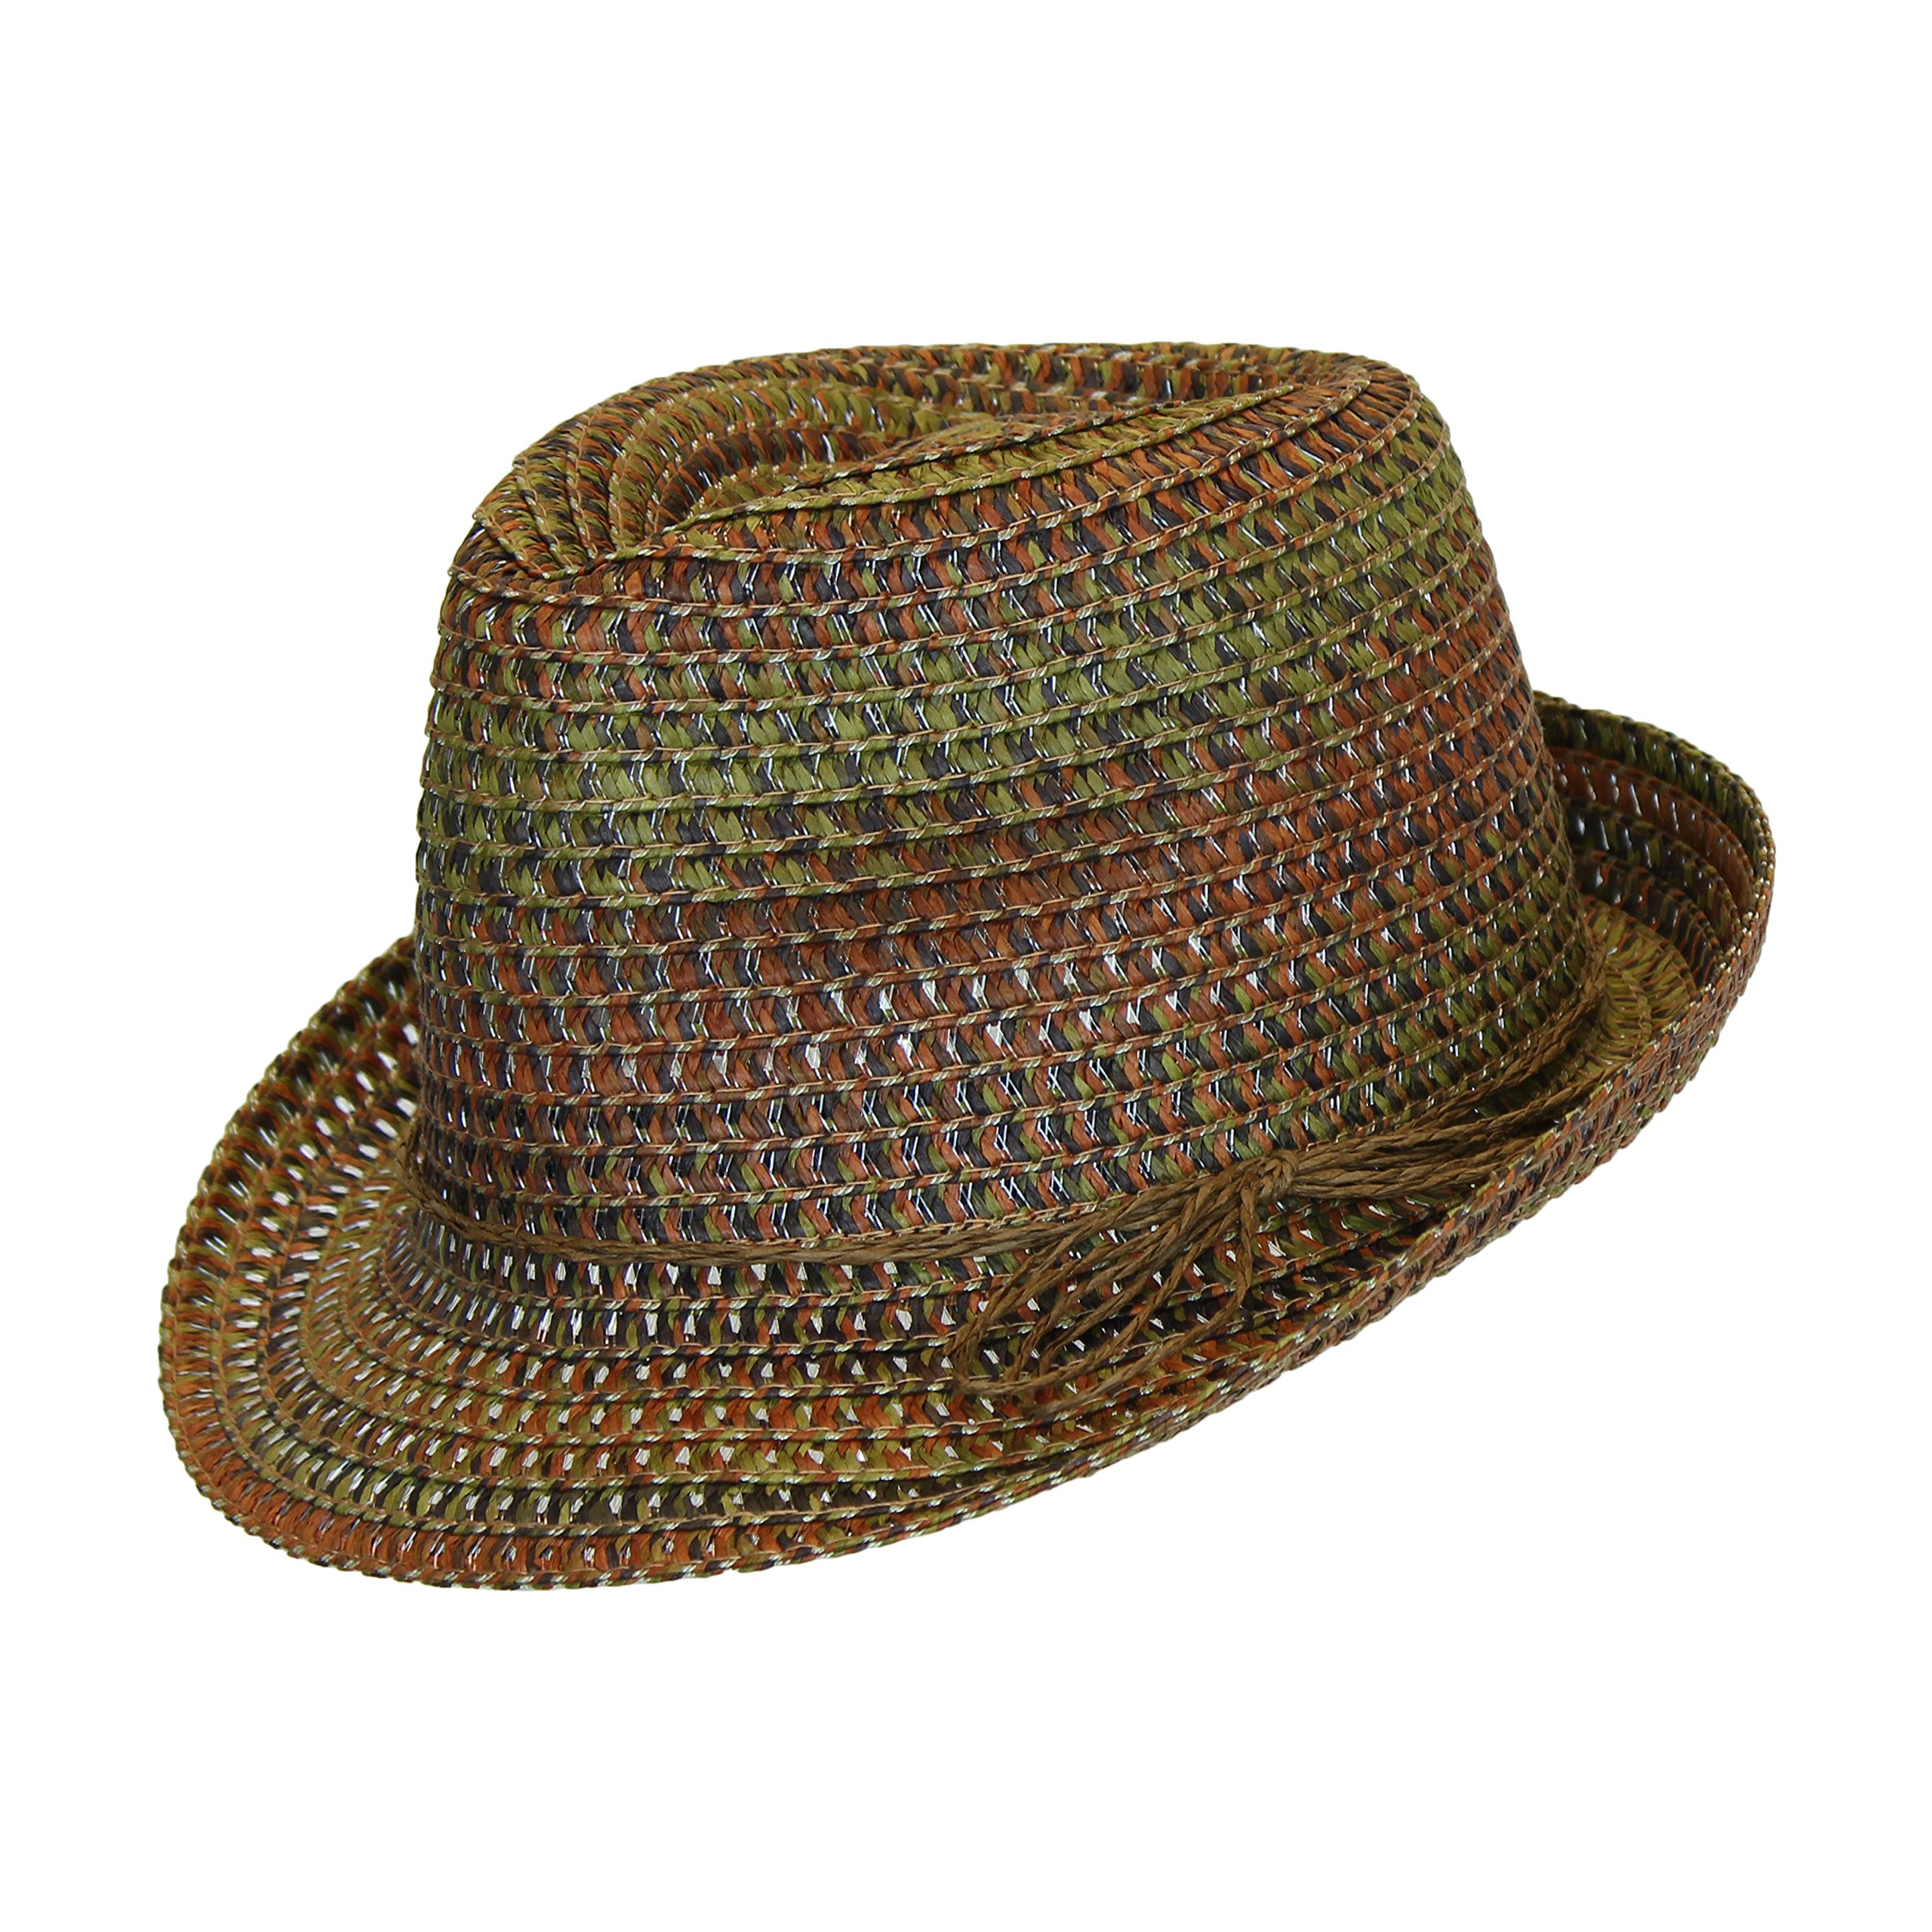 Boho Festival Straw Fedora Sun Hat in Olive, Brown and Rust Earth Tones, One Size